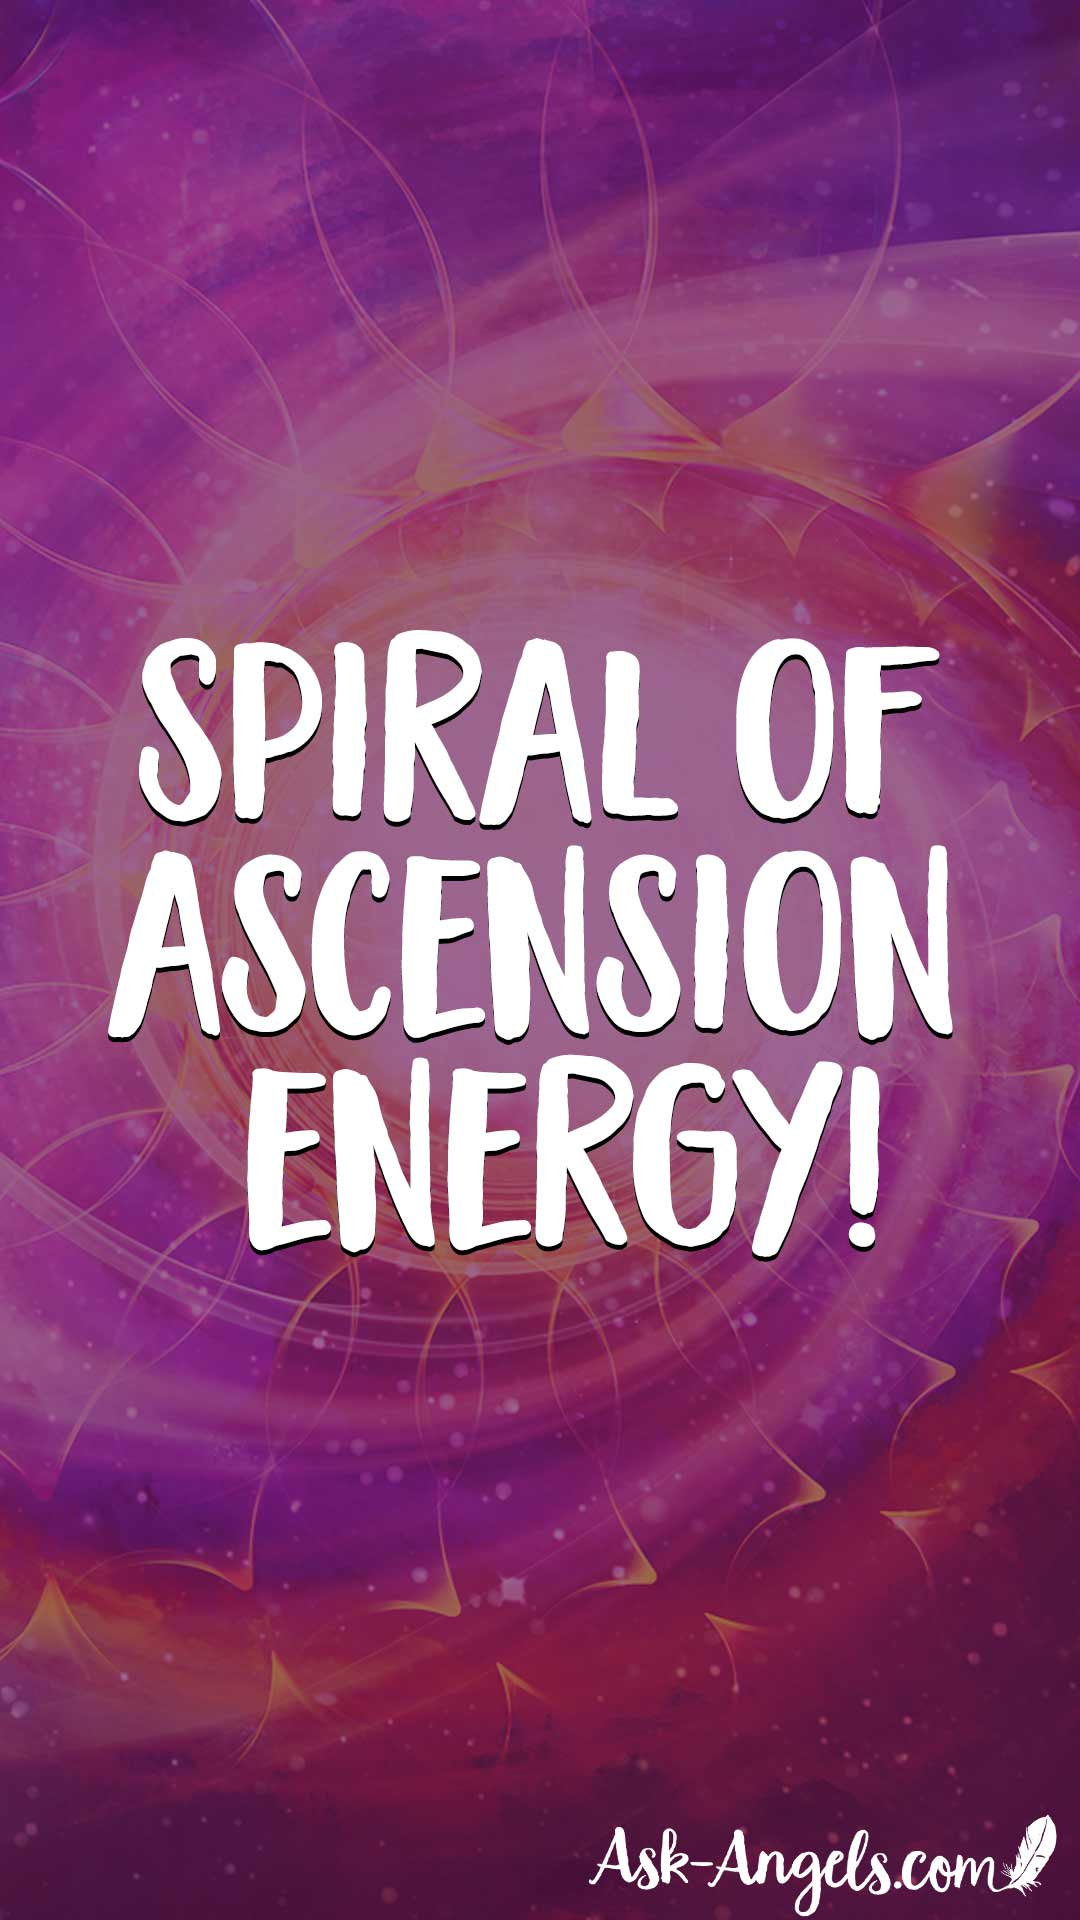 Spiral of Ascension Energy, channeling with the Council of Light